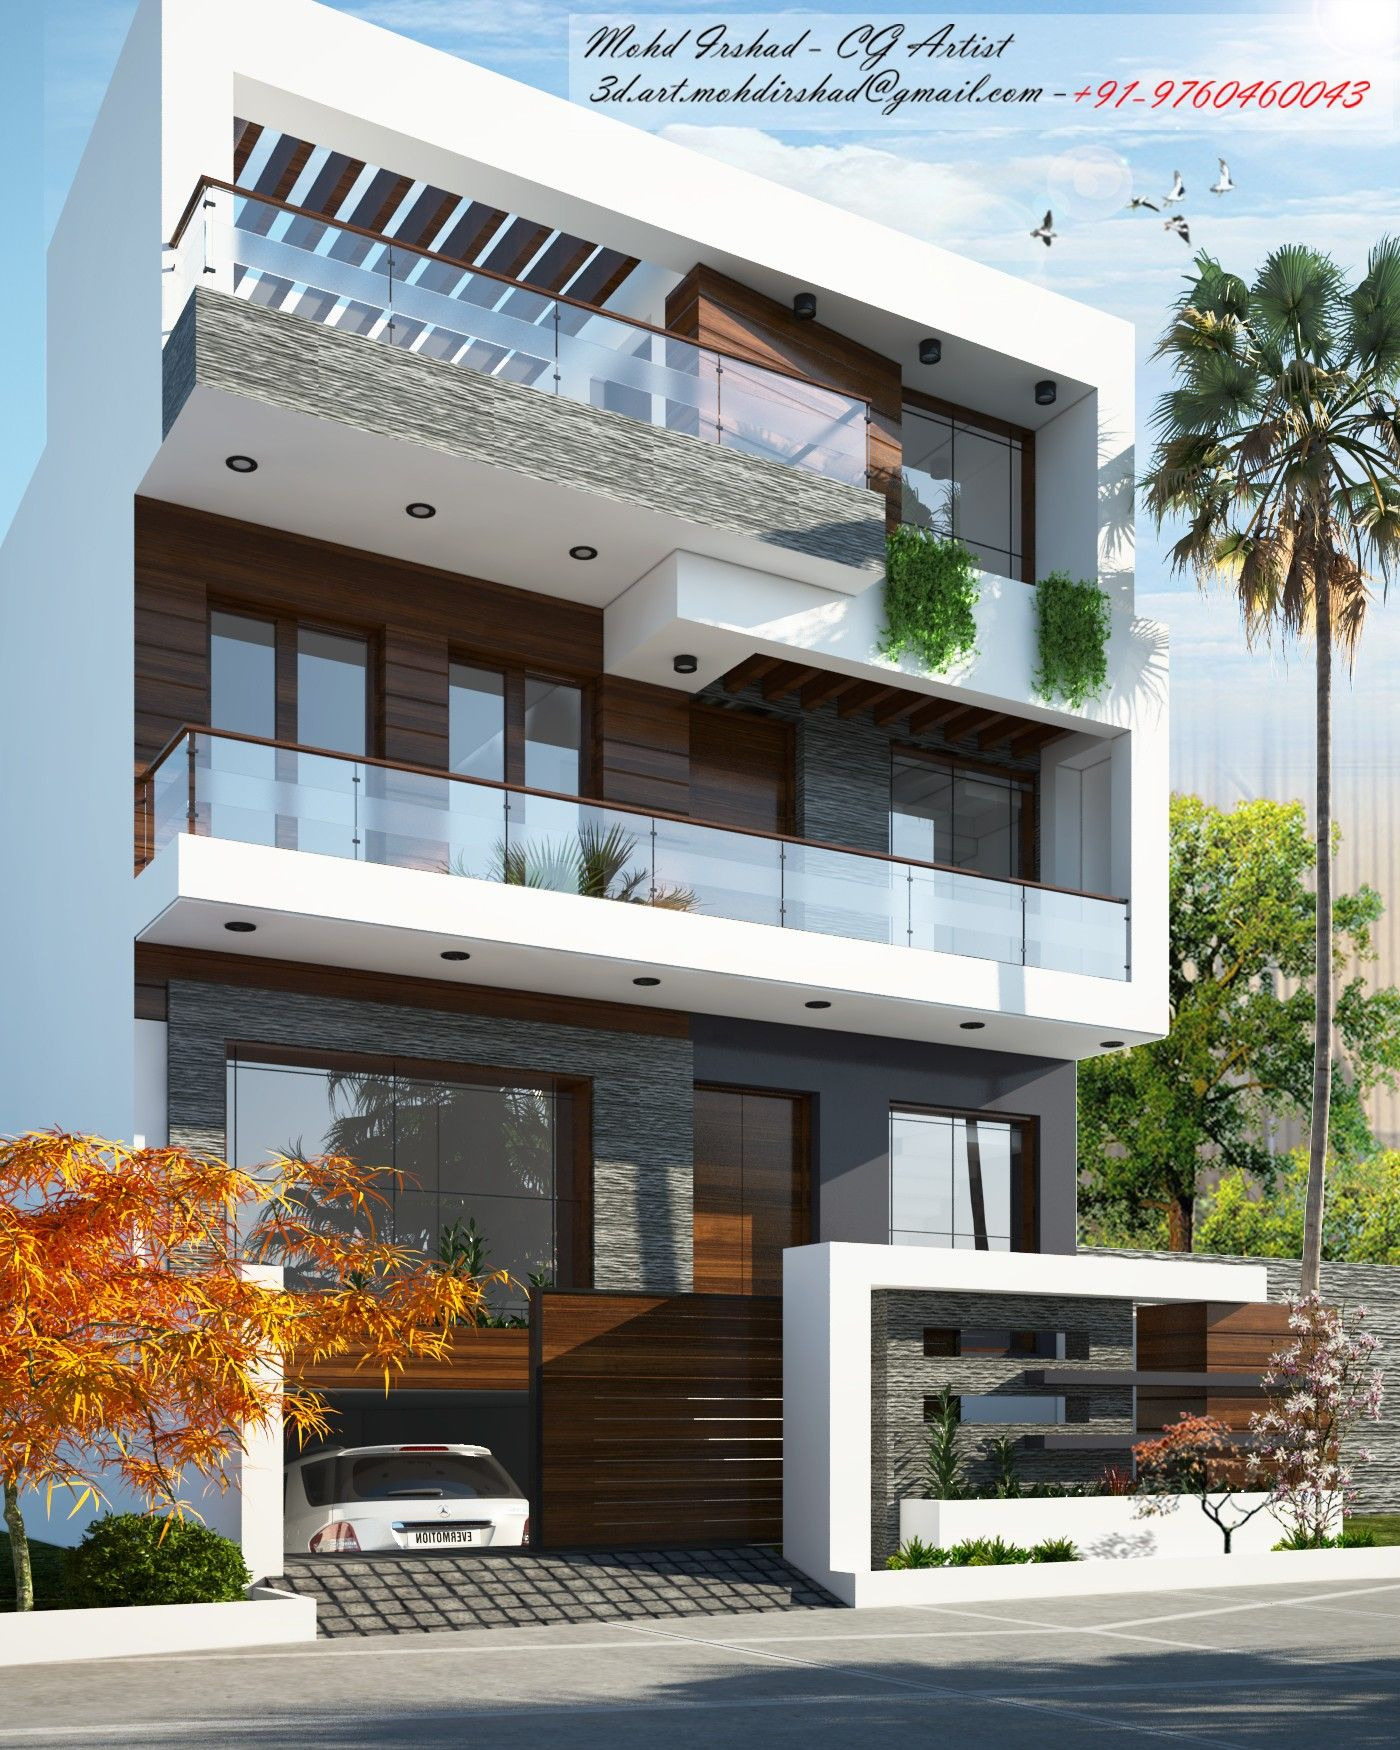 Modern House Front Design Elegant Idea by Mohd Irshad On 3d Art Architectural Visualization